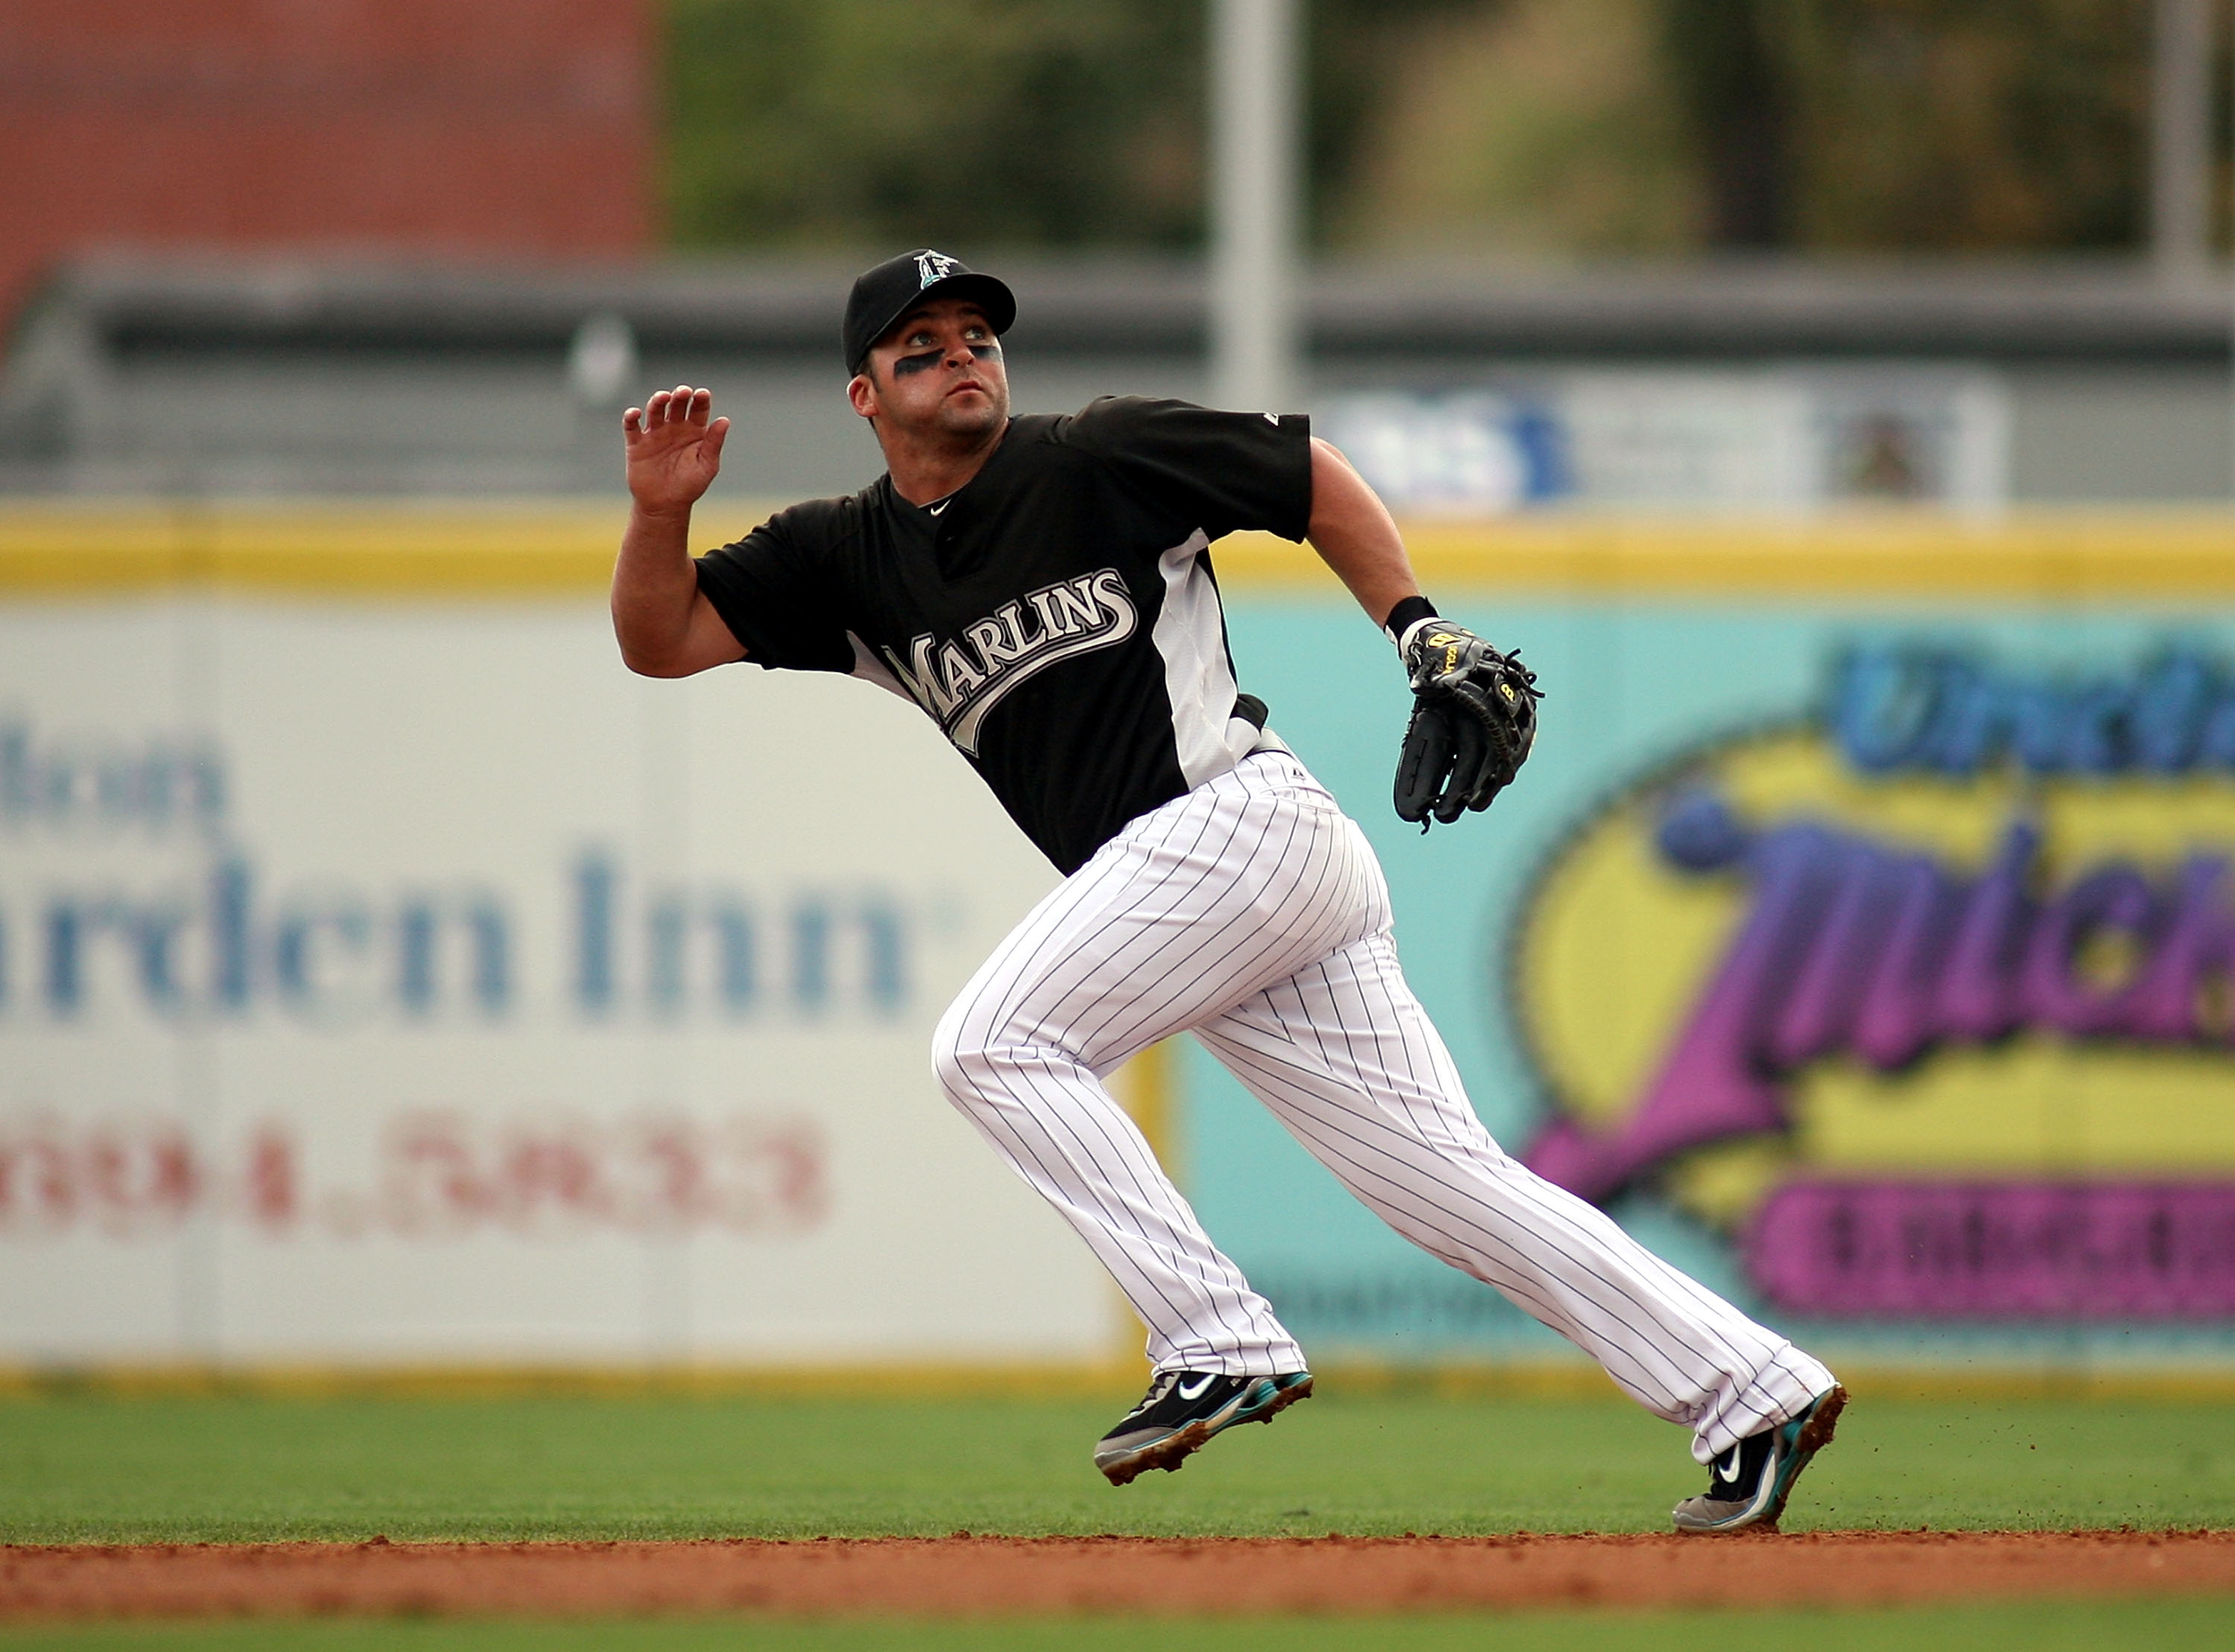 JUPITER, FL - MARCH 28: Second baseman Dan Uggla #6 of the Florida Marlins moves towards the ball  against the Houston Astros on March 28, 2010 at Roger Dean Stadium in Jupiter, Florida.  (Photo by Marc Serota/Getty Images)